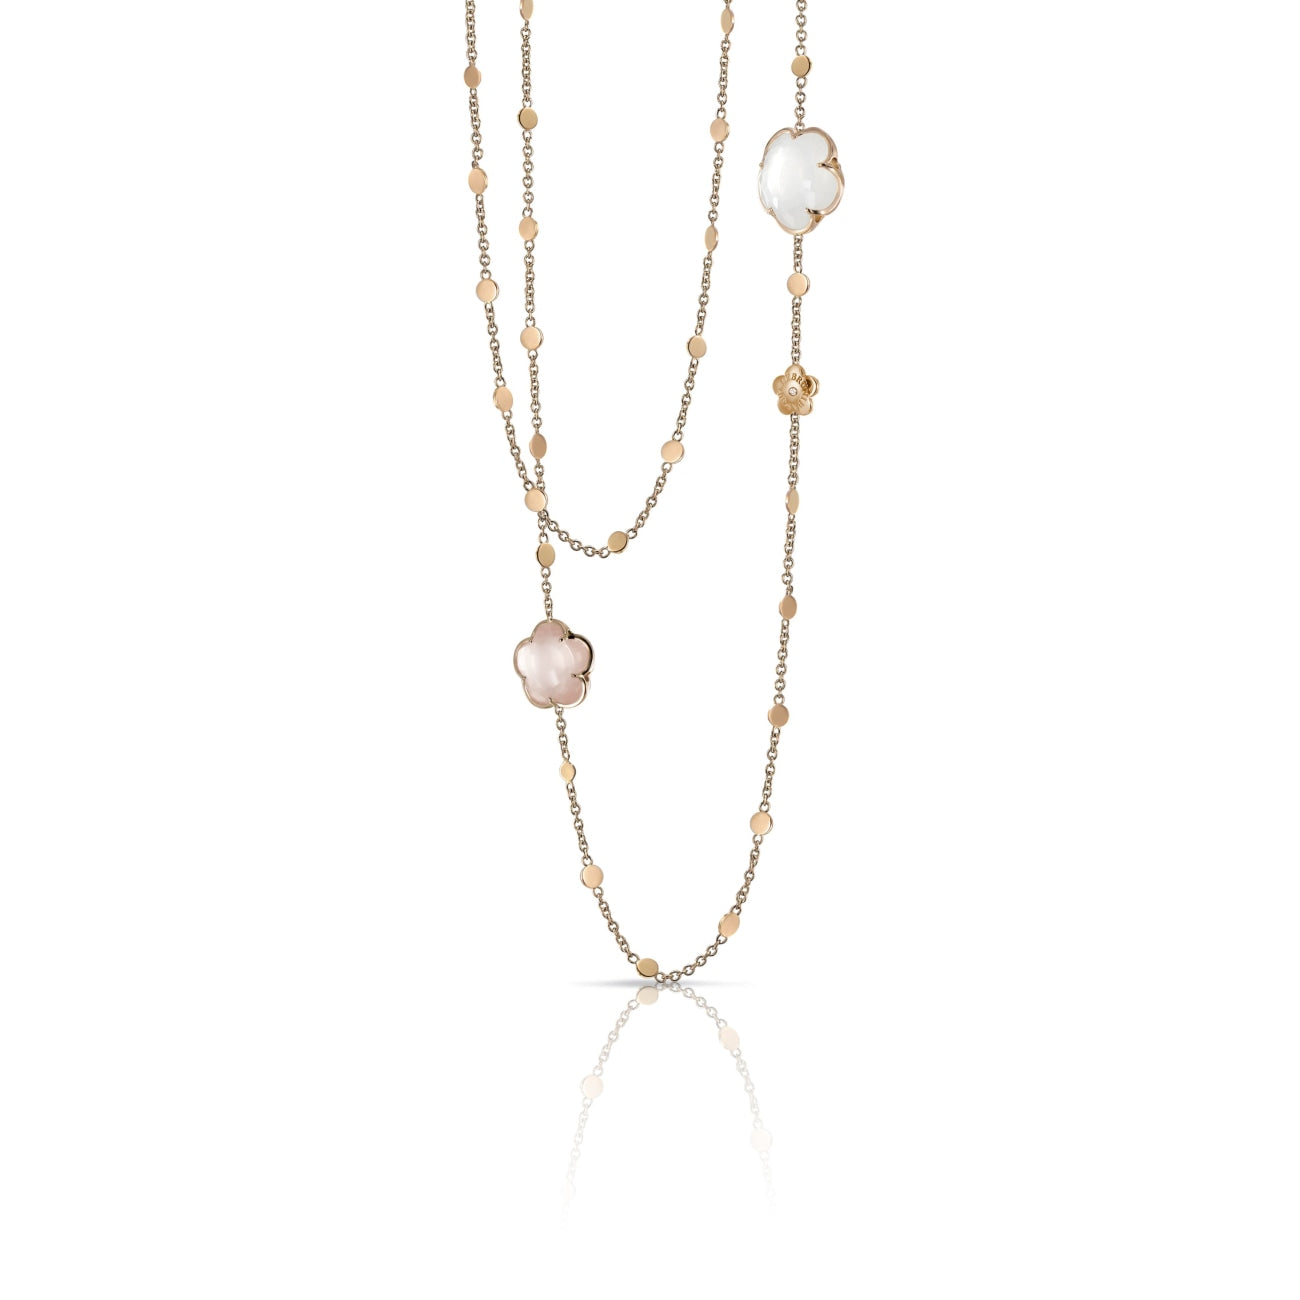 Pasquale Bruni Jewelry - Bon Ton pink and milky quartz necklace | Manfredi Jewels